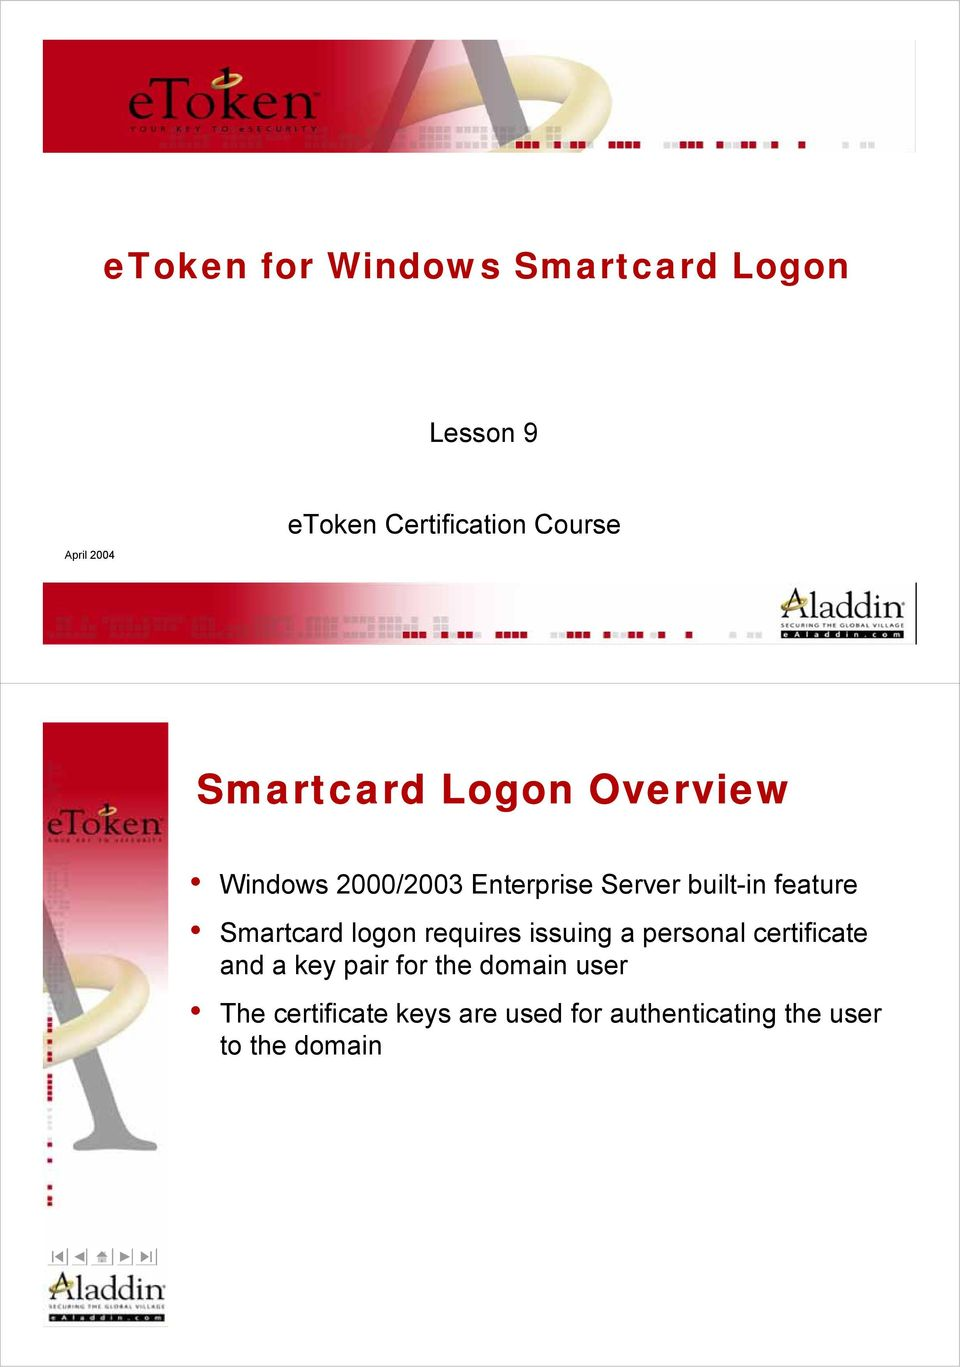 feature Smartcard logon requires issuing a personal certificate and a key pair